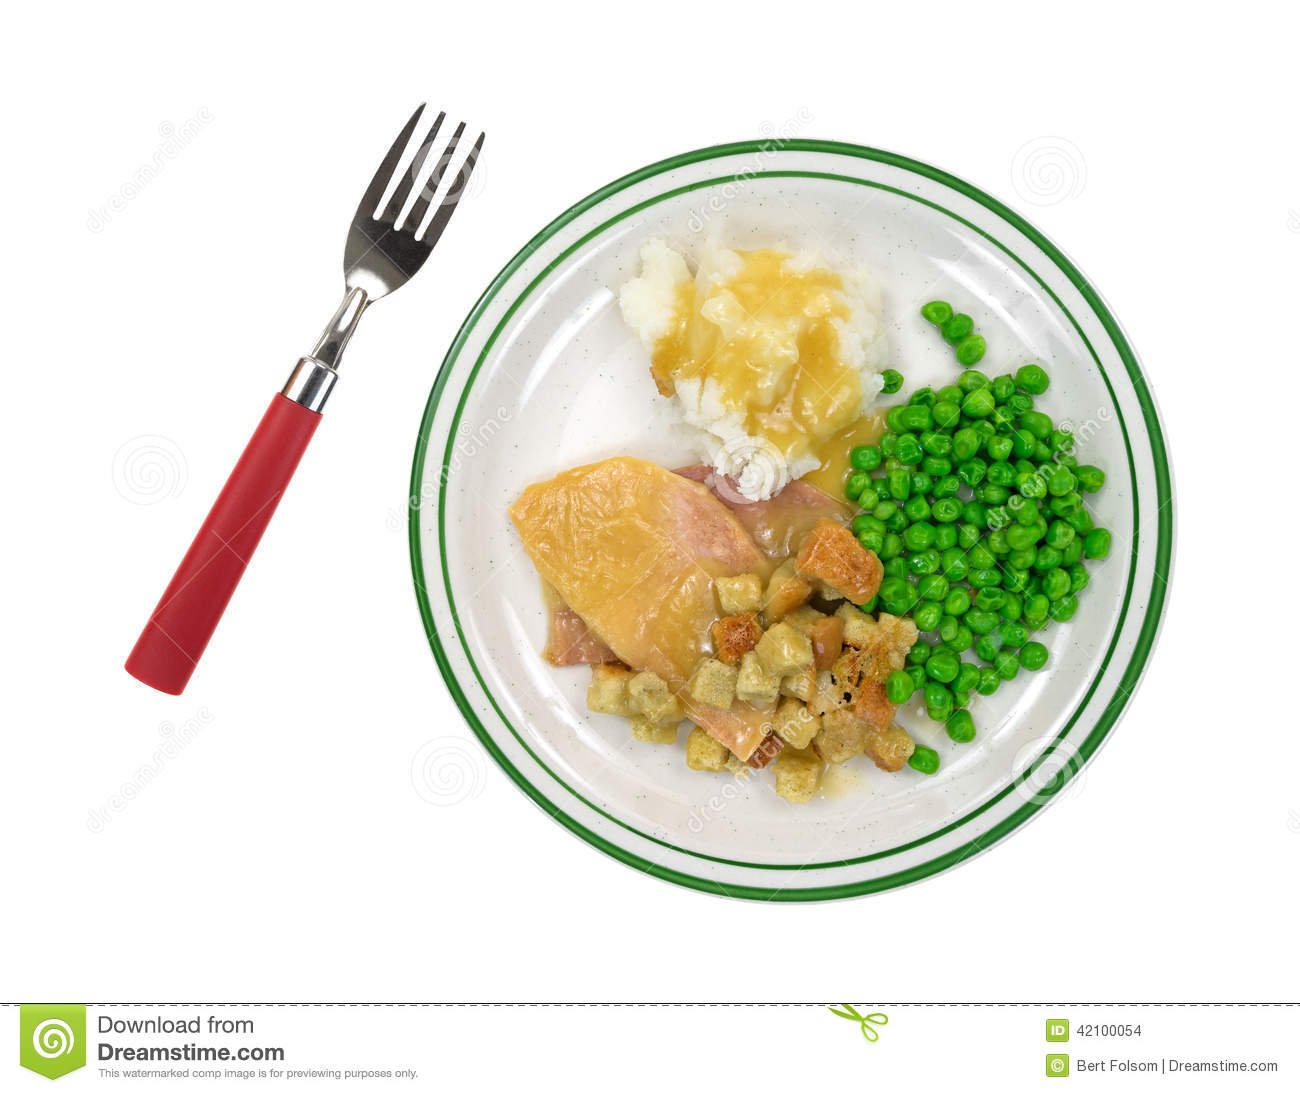 Sliced Turkey Tv Dinner On Plate With Fork Stock Photo  sc 1 st  Castrophotos : plate dinner - Pezcame.Com